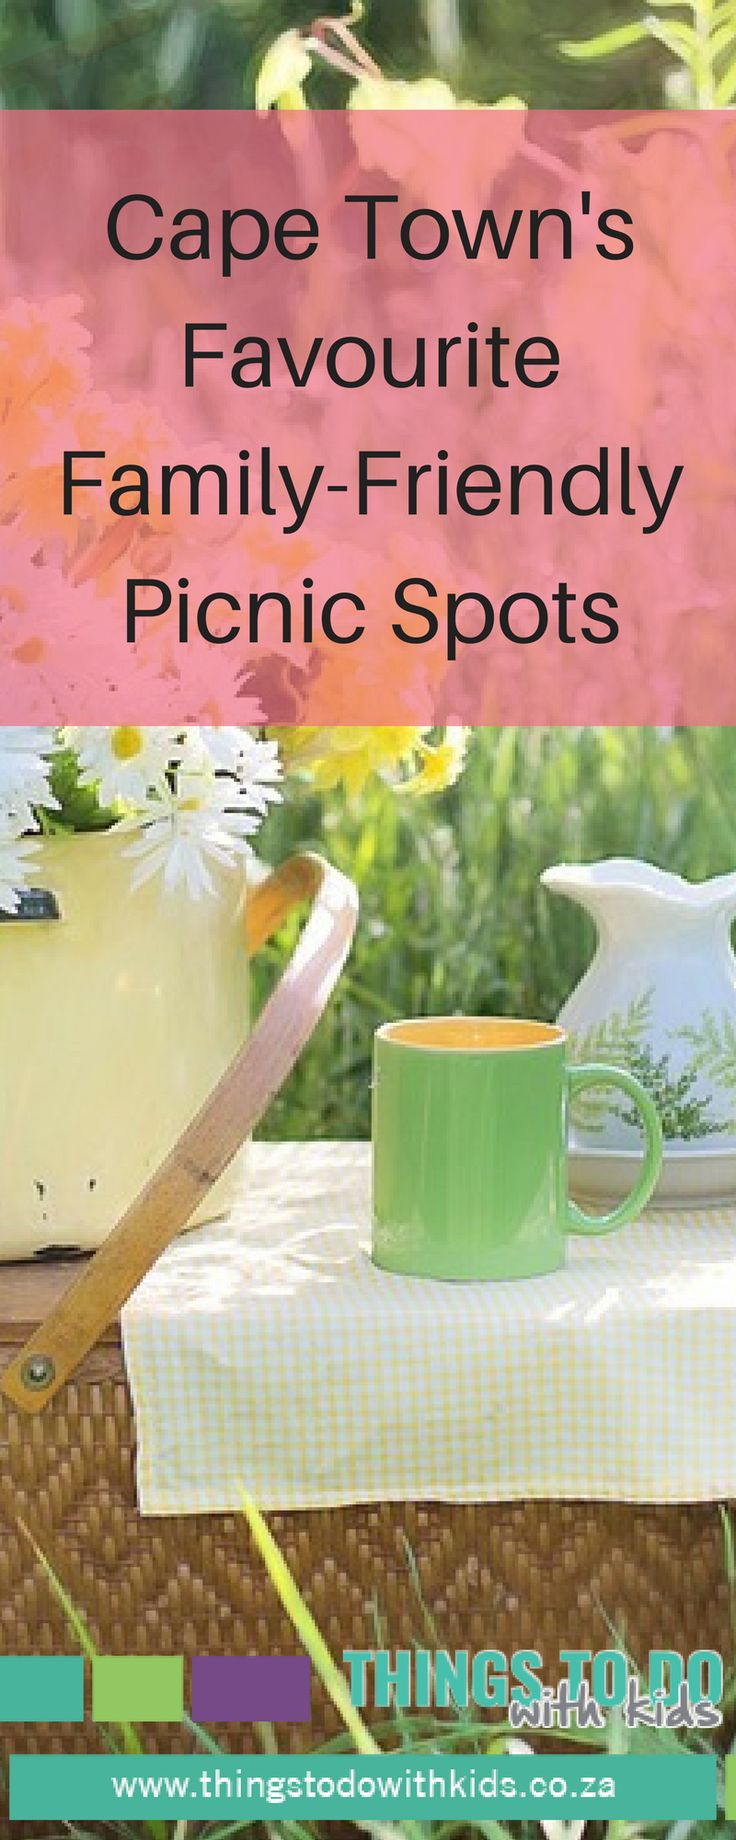 Picnic Spots Cape Town   Activities with Kids   Excursions & Activities   Family-friendly picnic spots Cape Town   Things to do with Kids